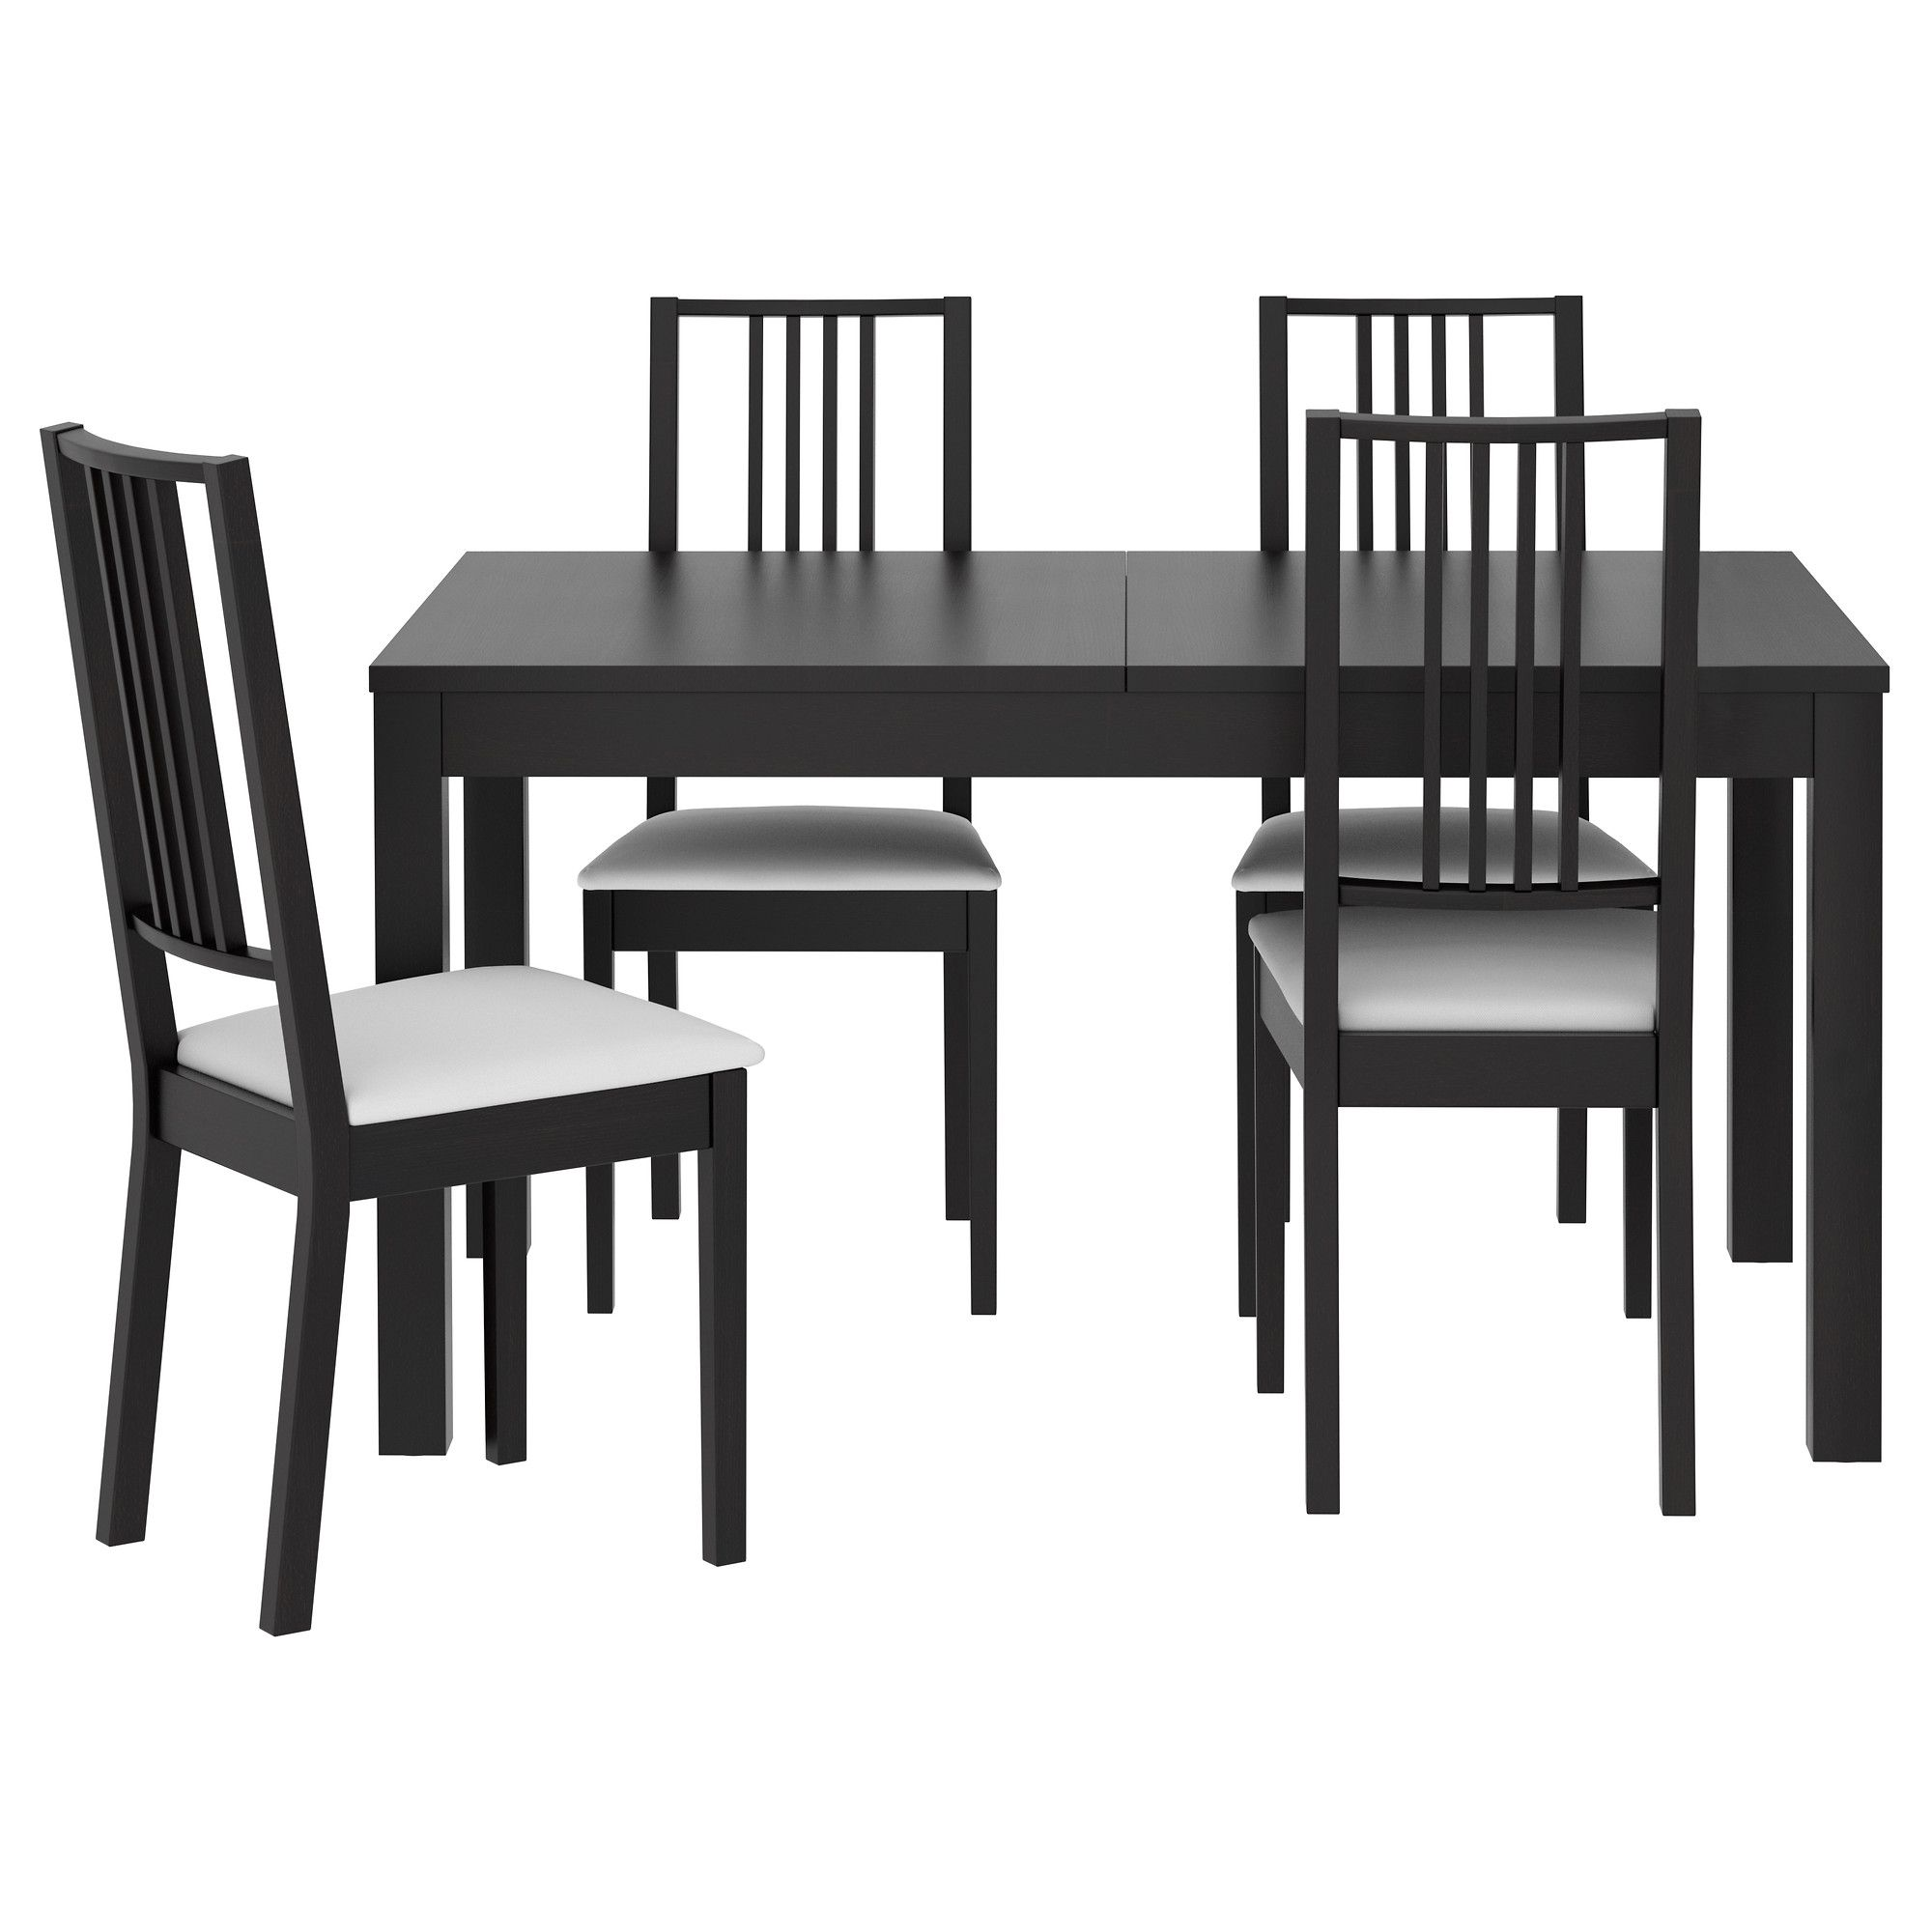 Black Dining Room Table And Chairs: BJURSTA/BÖRJE Table And 4 Chairs